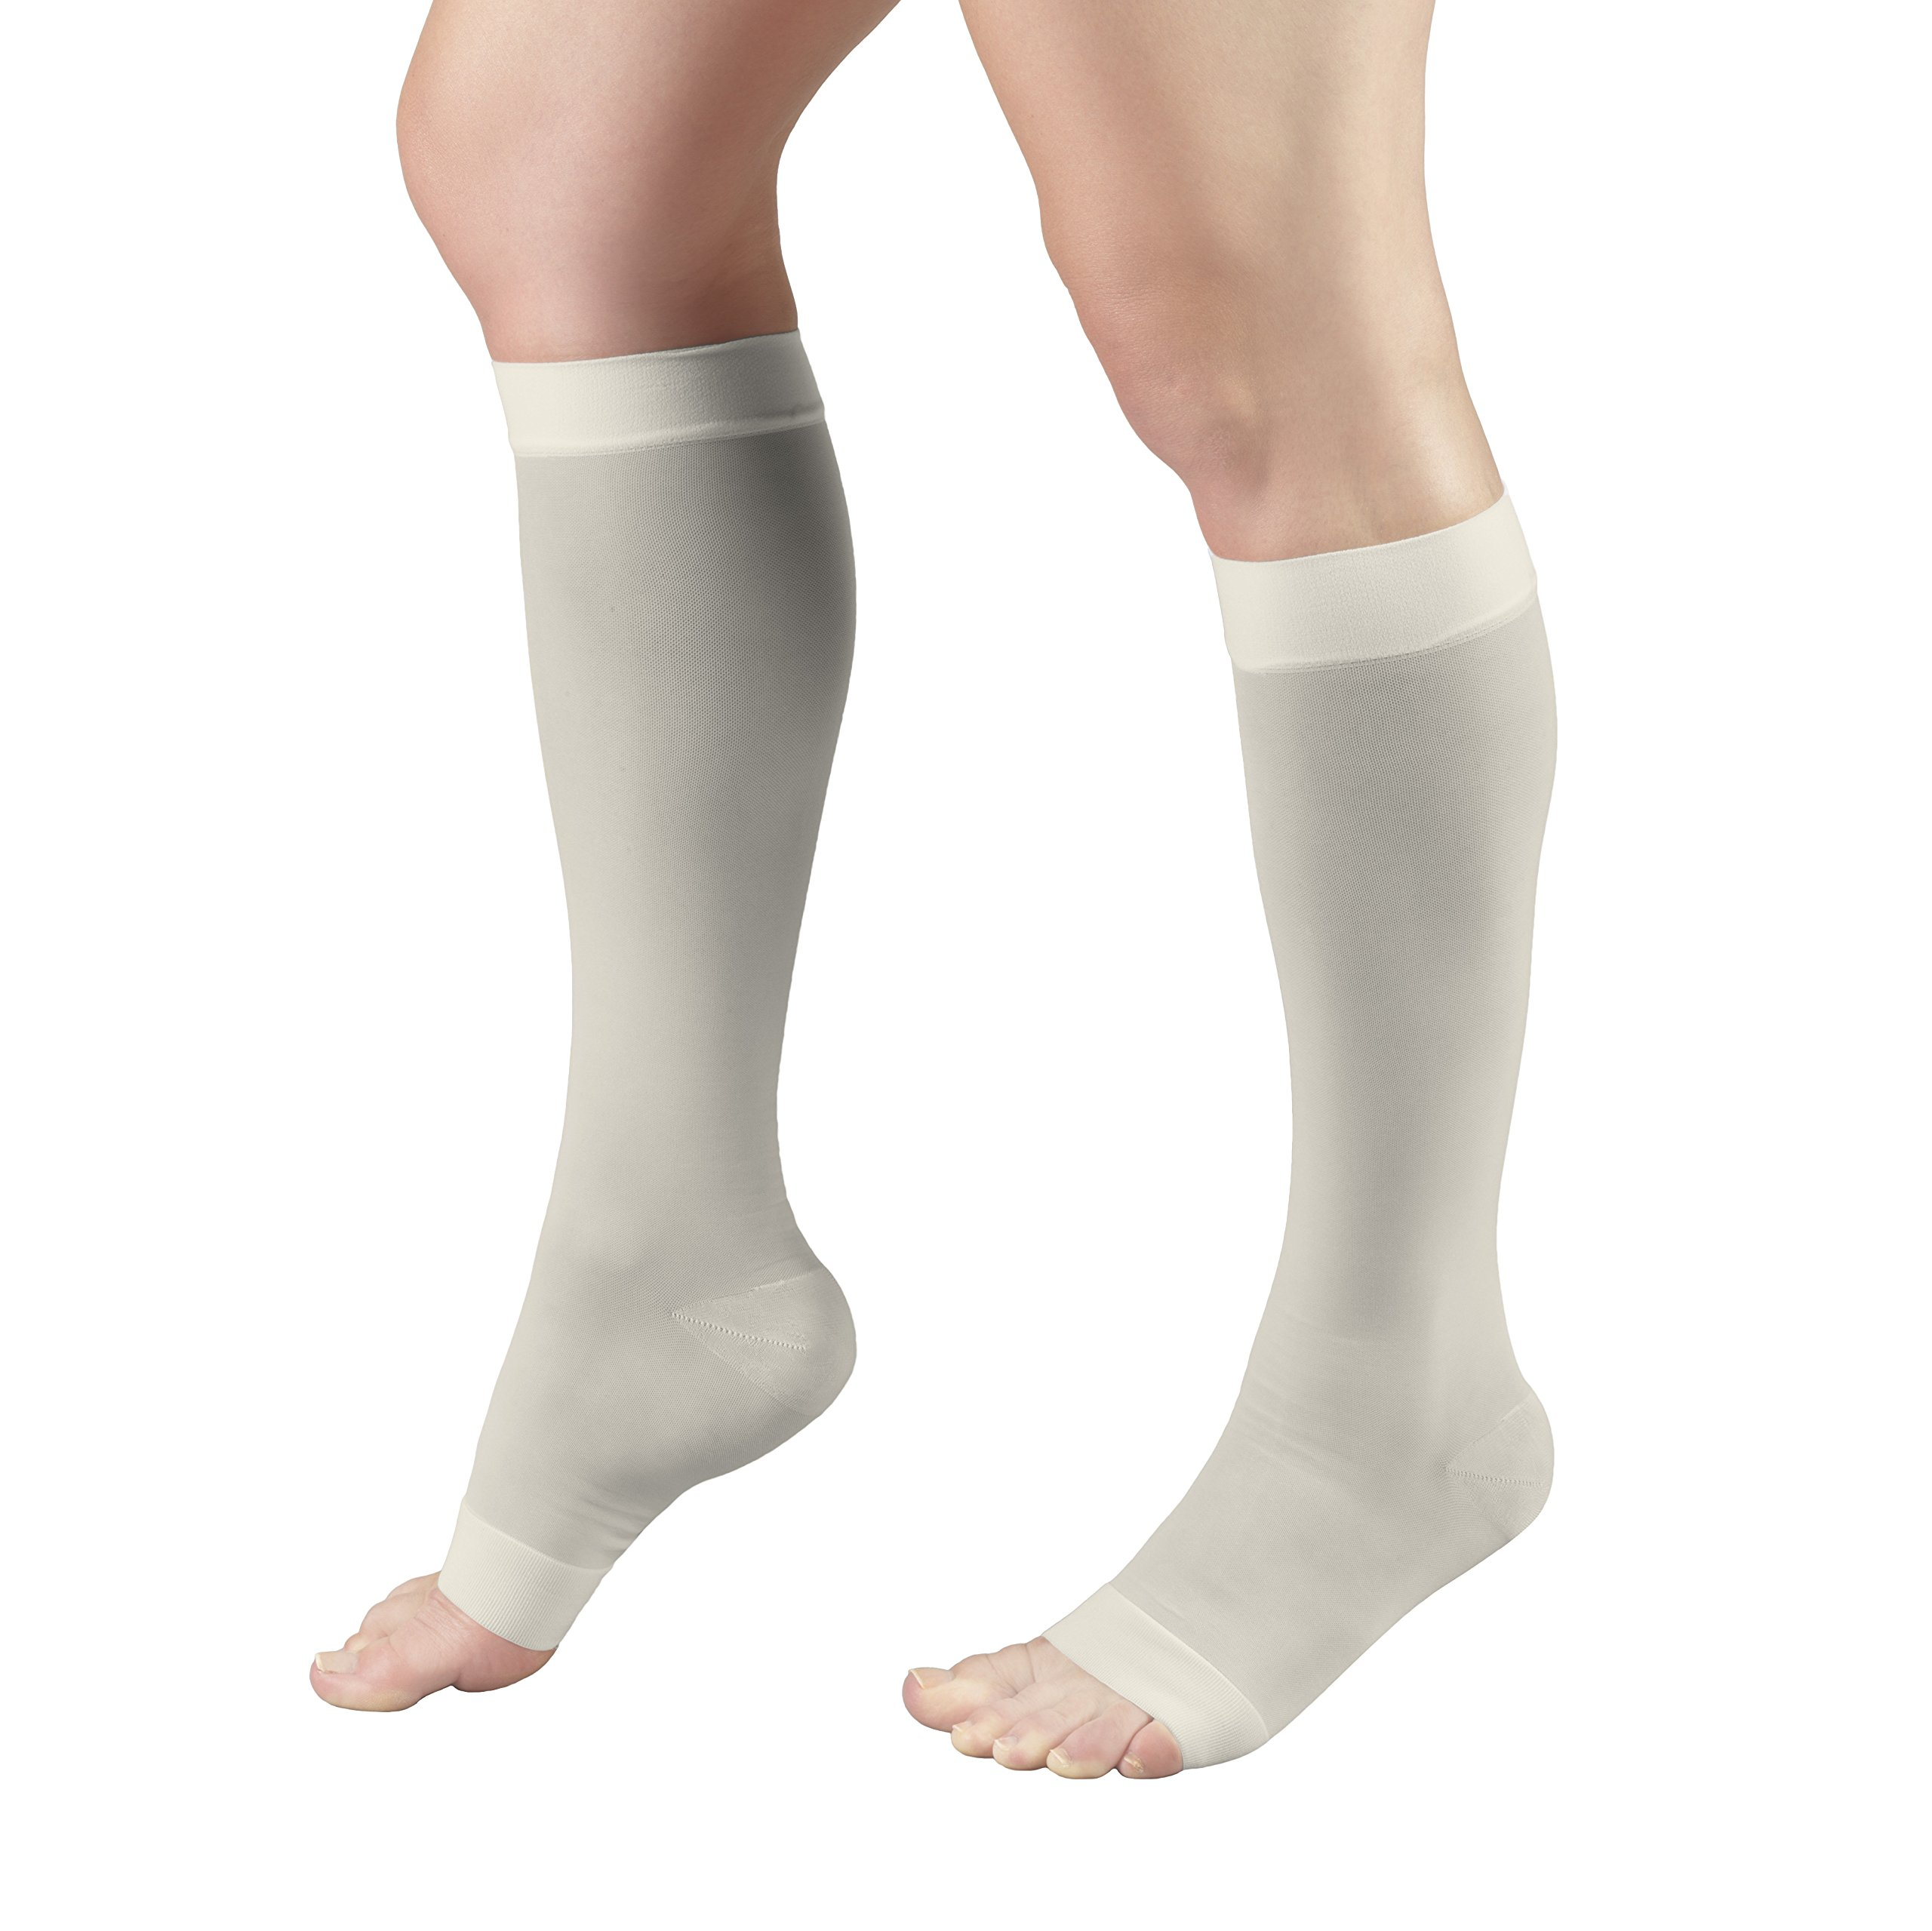 74f5e81e995 Amazon.com  Truform Compression Stockings